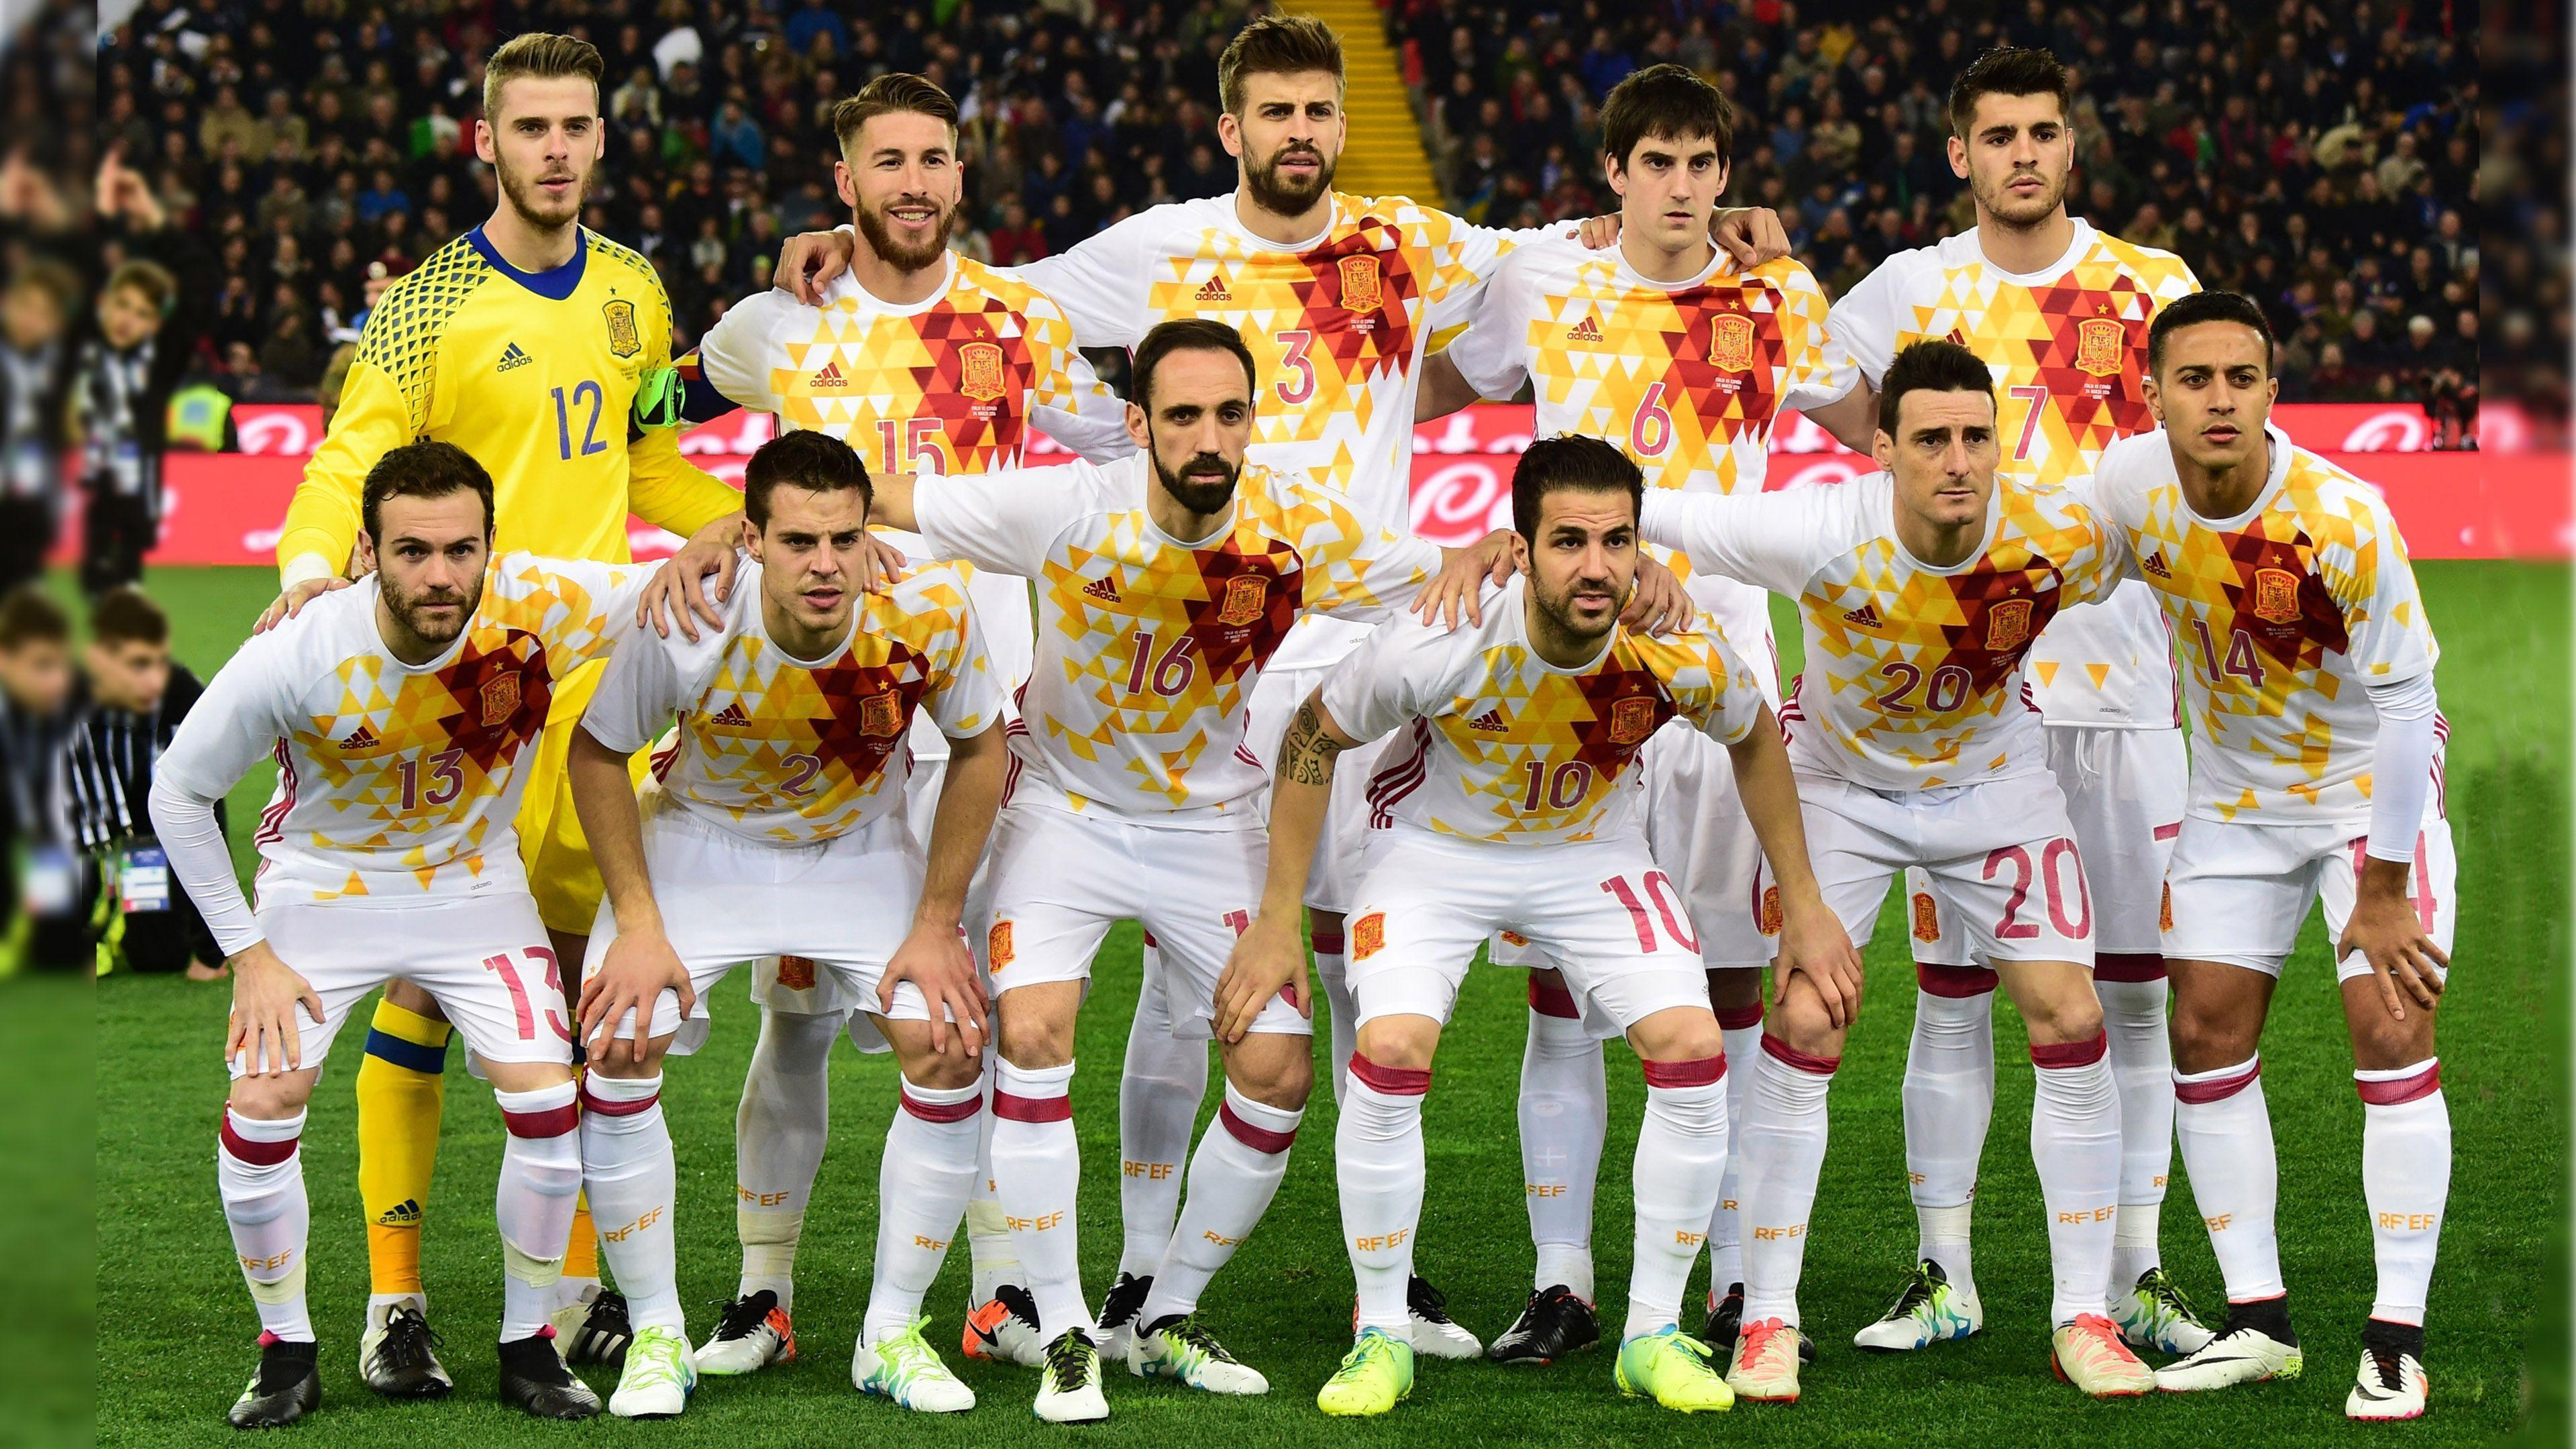 Spain National Team Wallpapers 2016 3840x2160